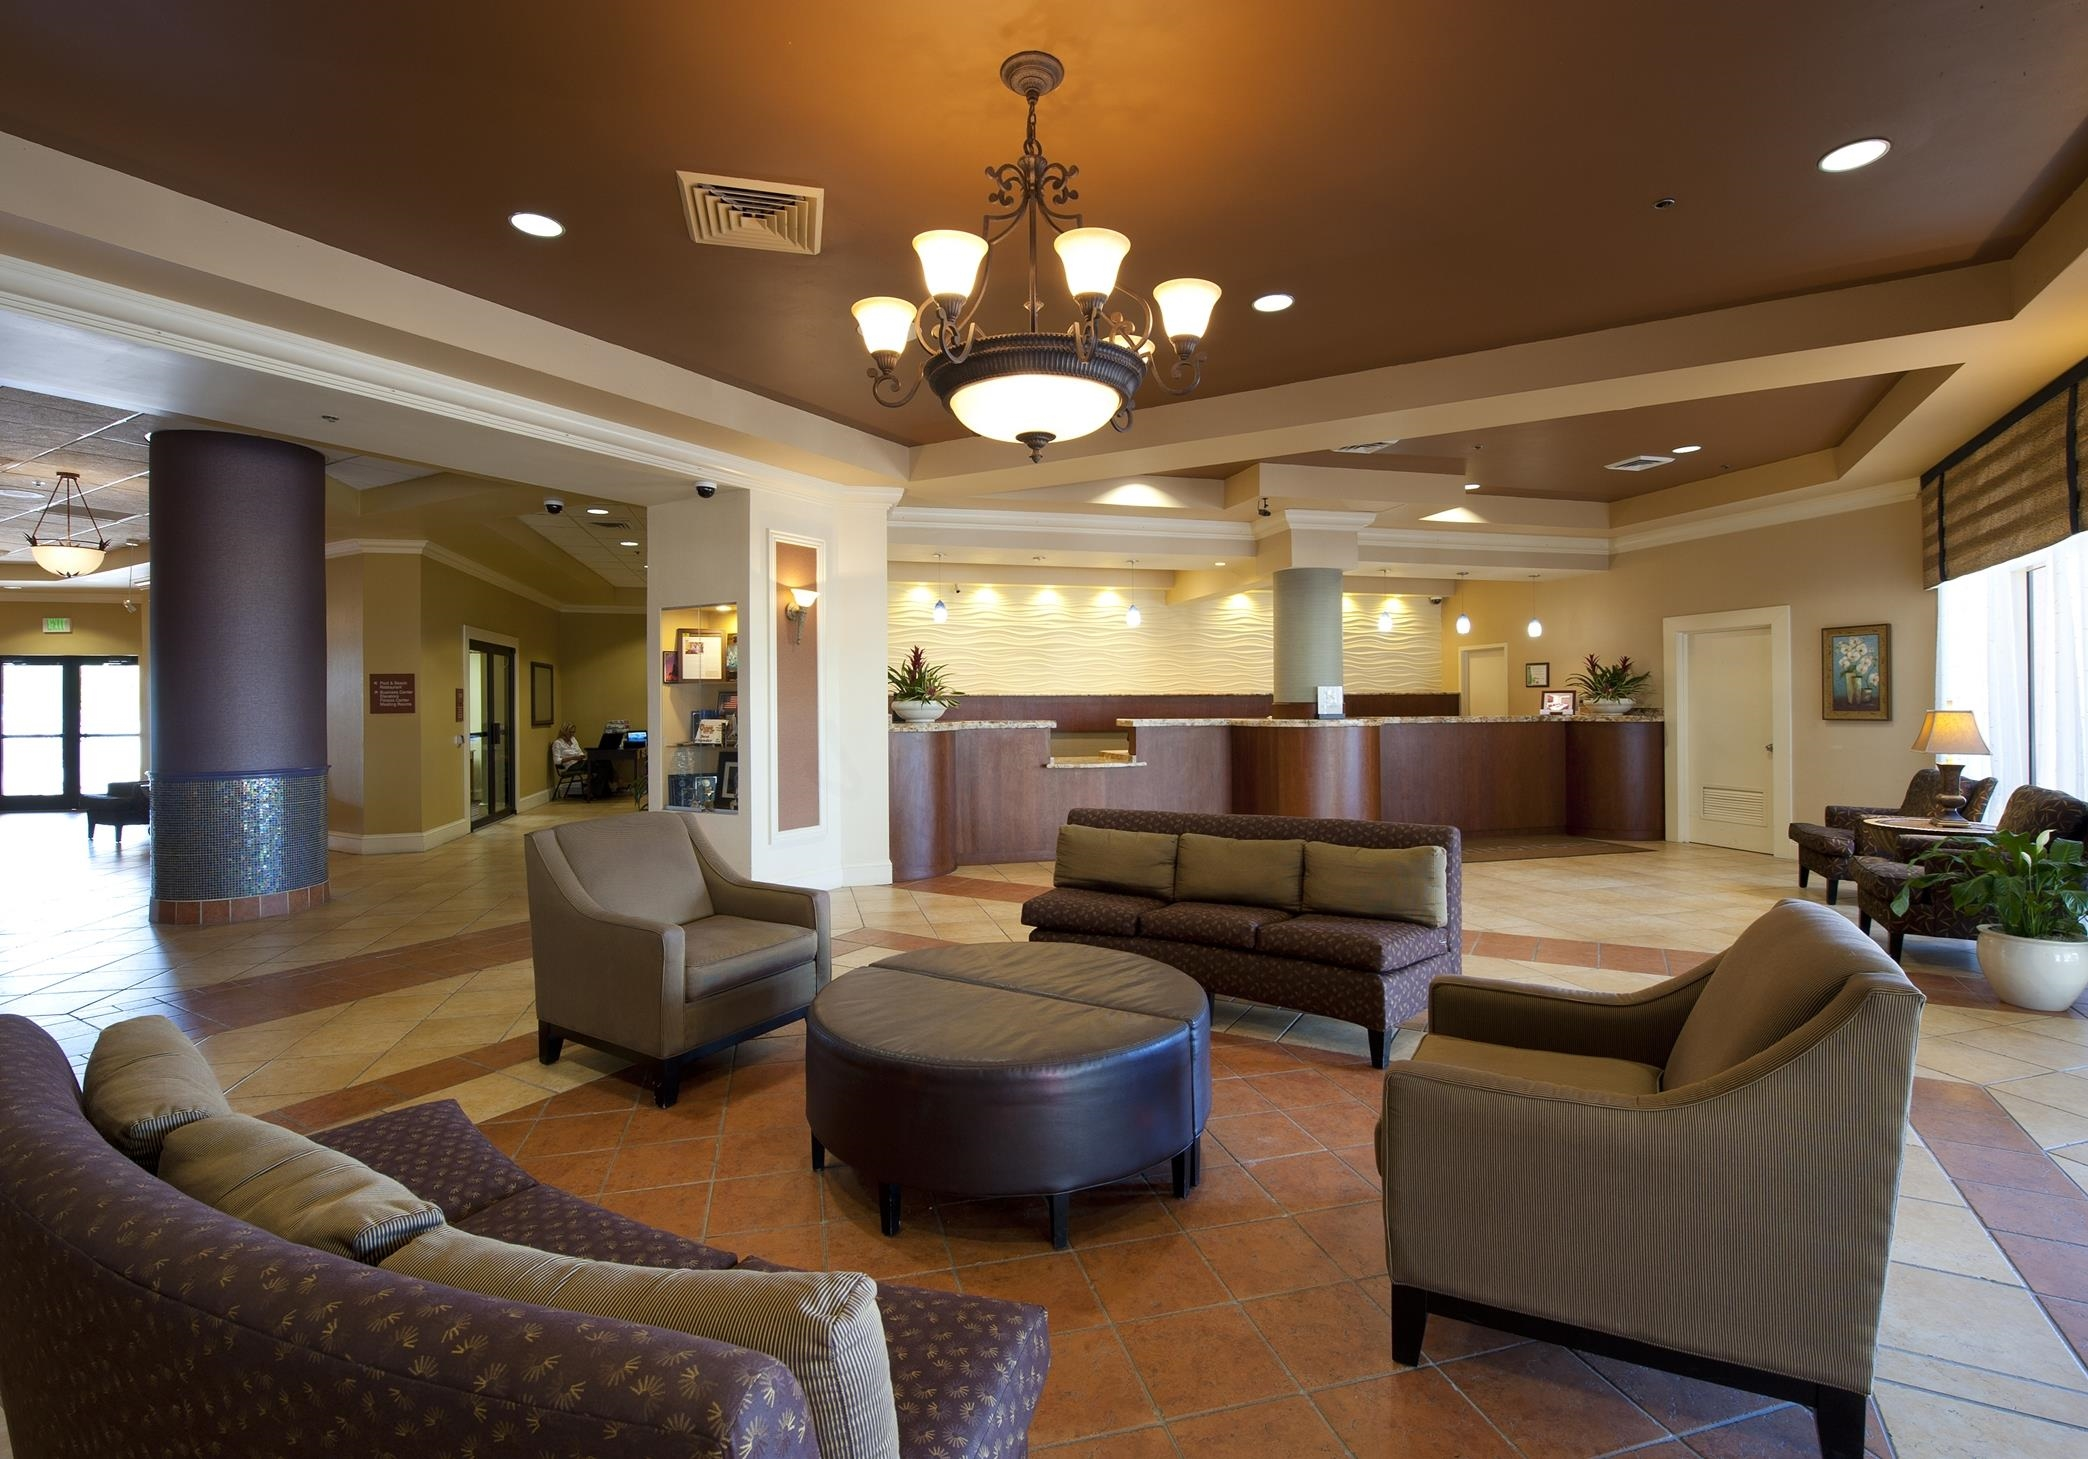 DoubleTree by Hilton Hotel Cocoa Beach Oceanfront image 1